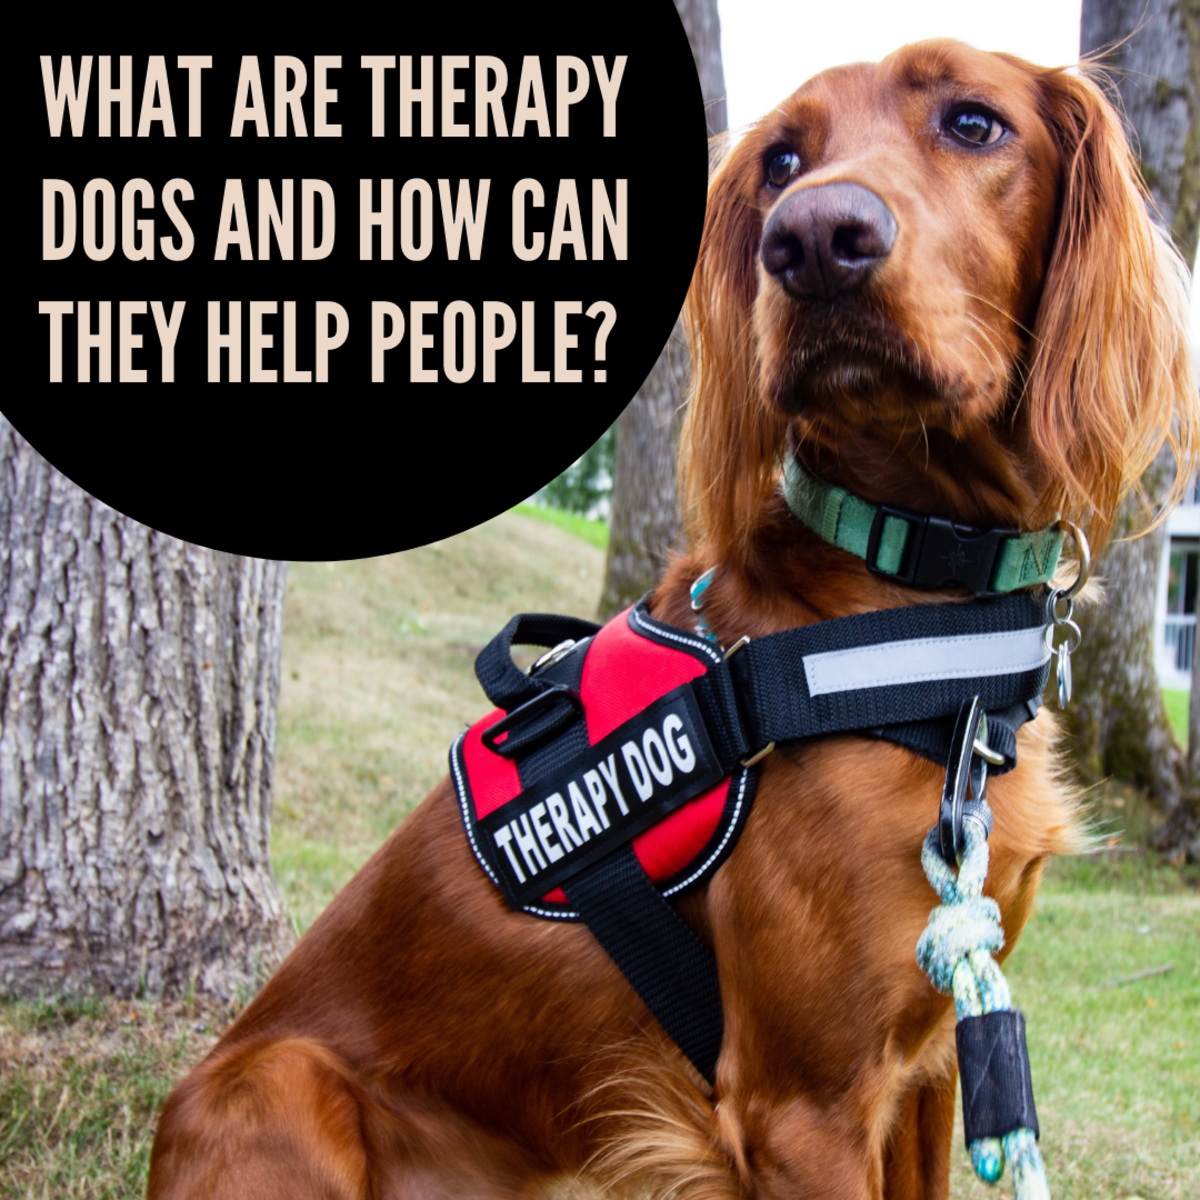 Therapy Dogs: How They Provide a Helping Paw